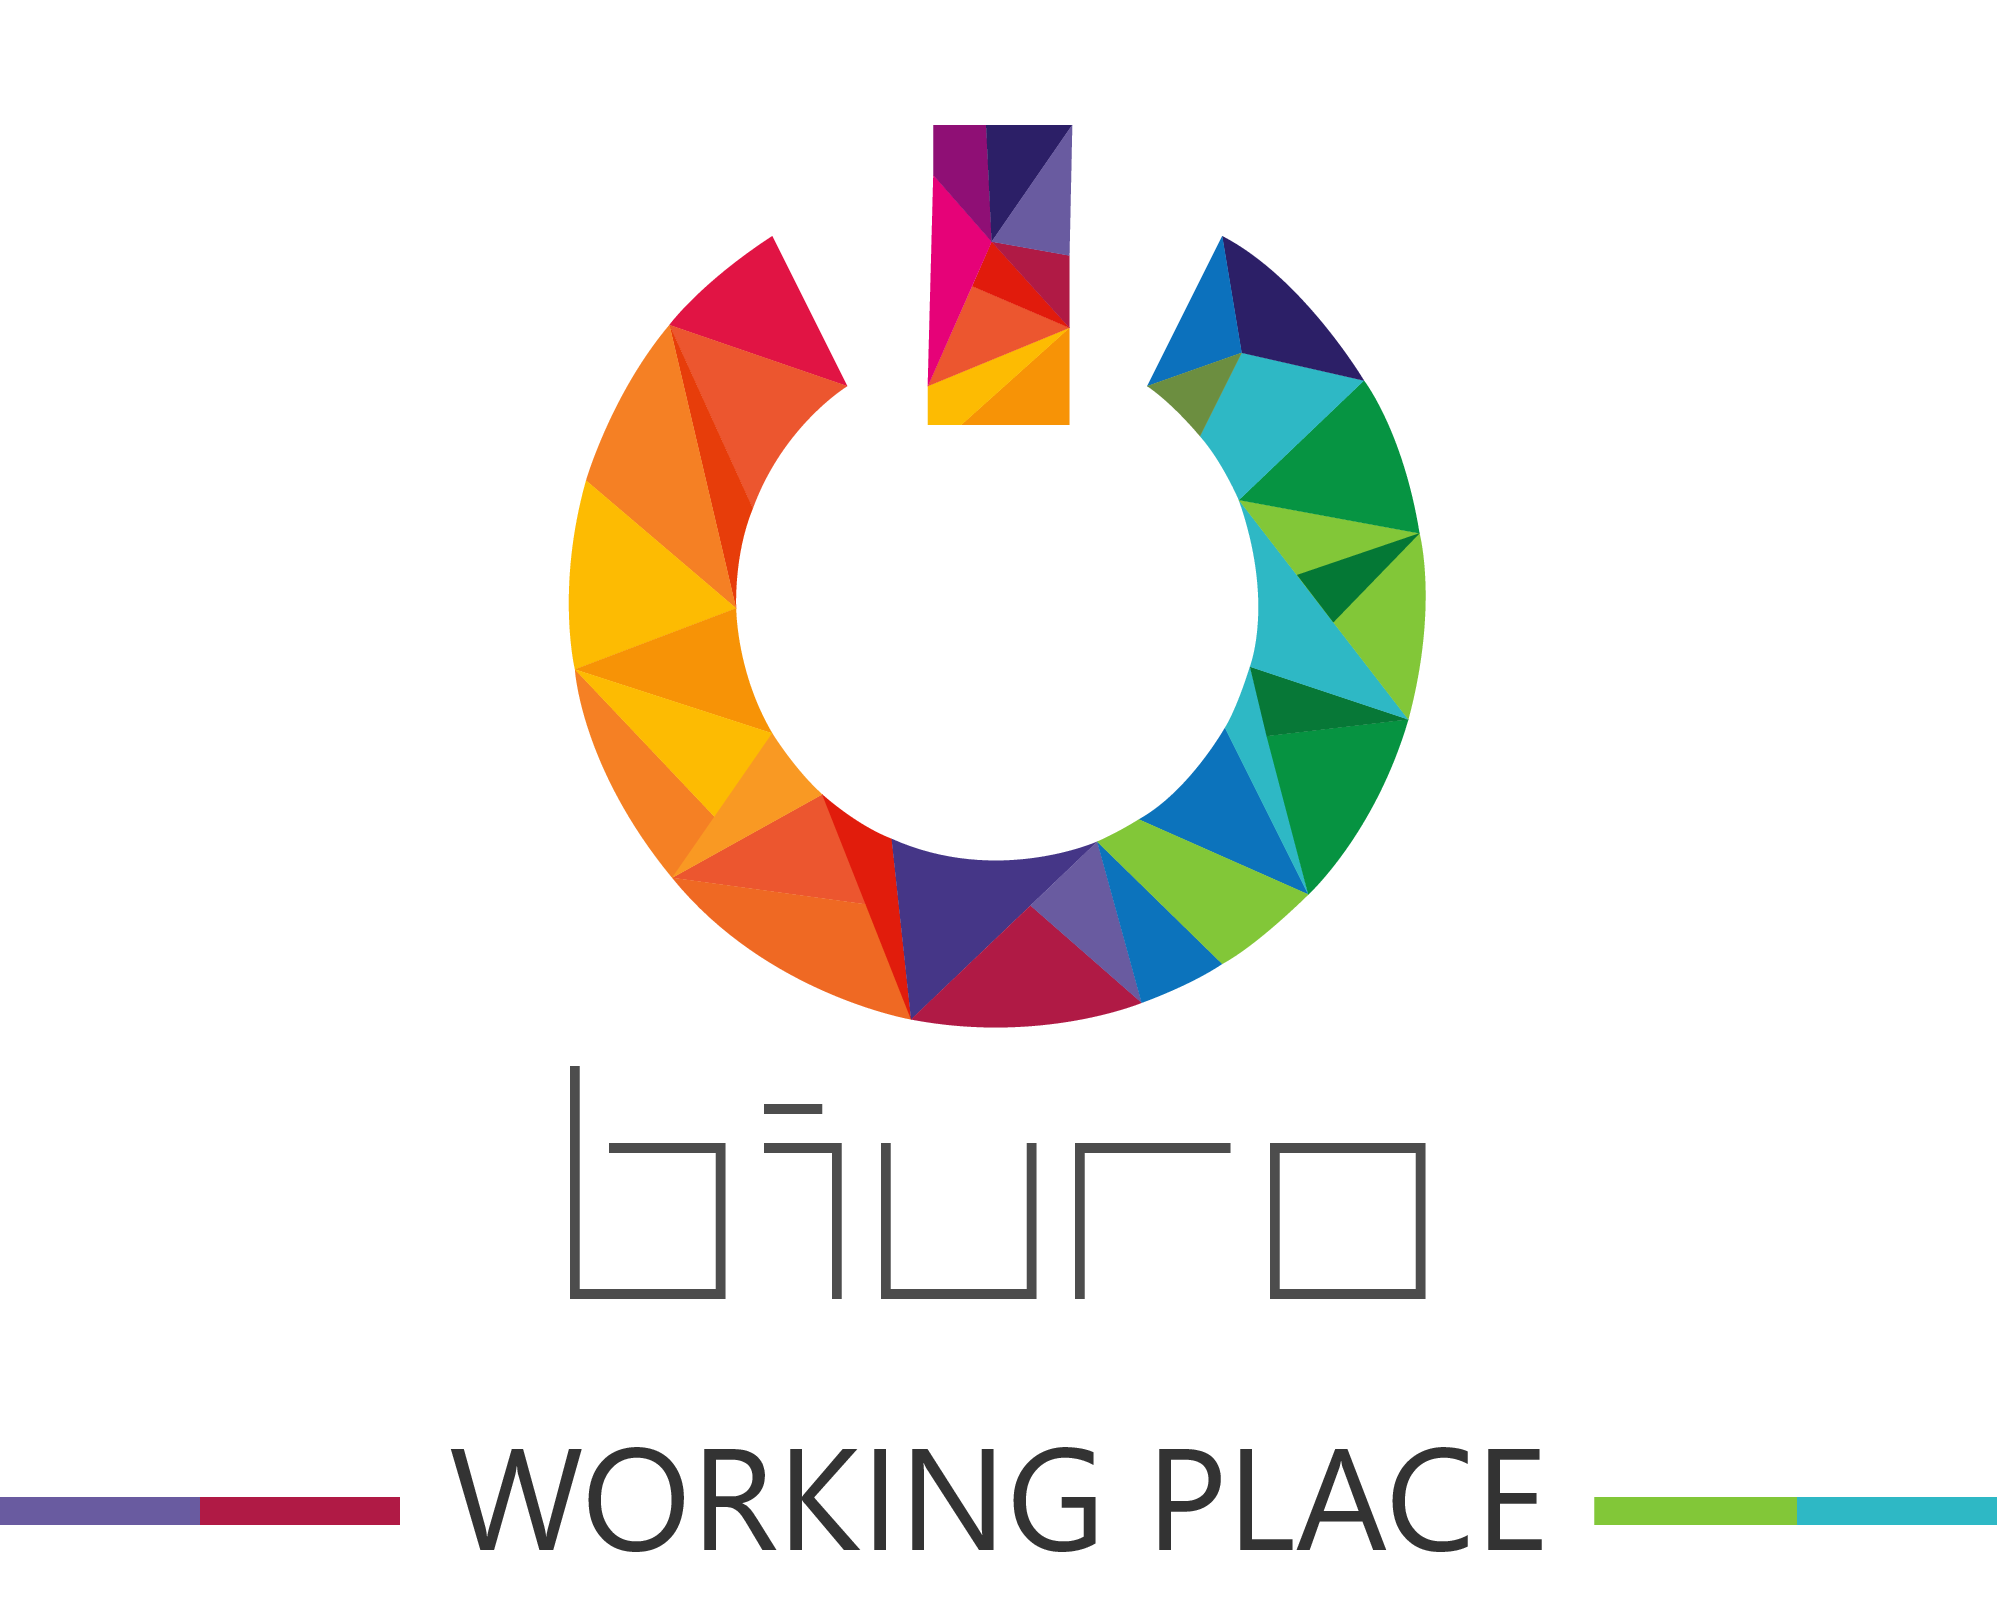 BIURO Working Place